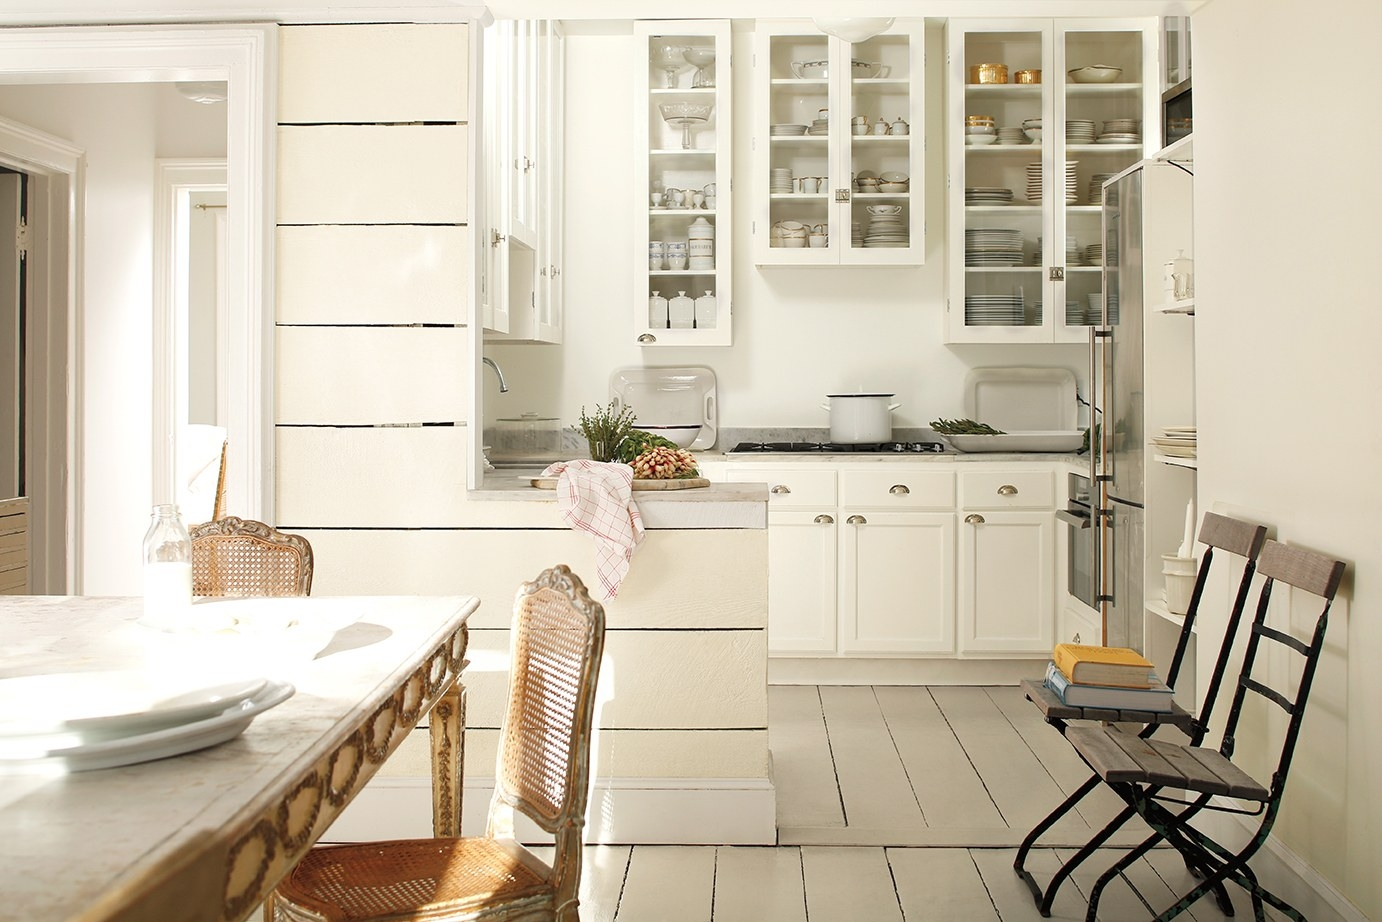 Simply White Vs White Dove Kitchen Cabinets